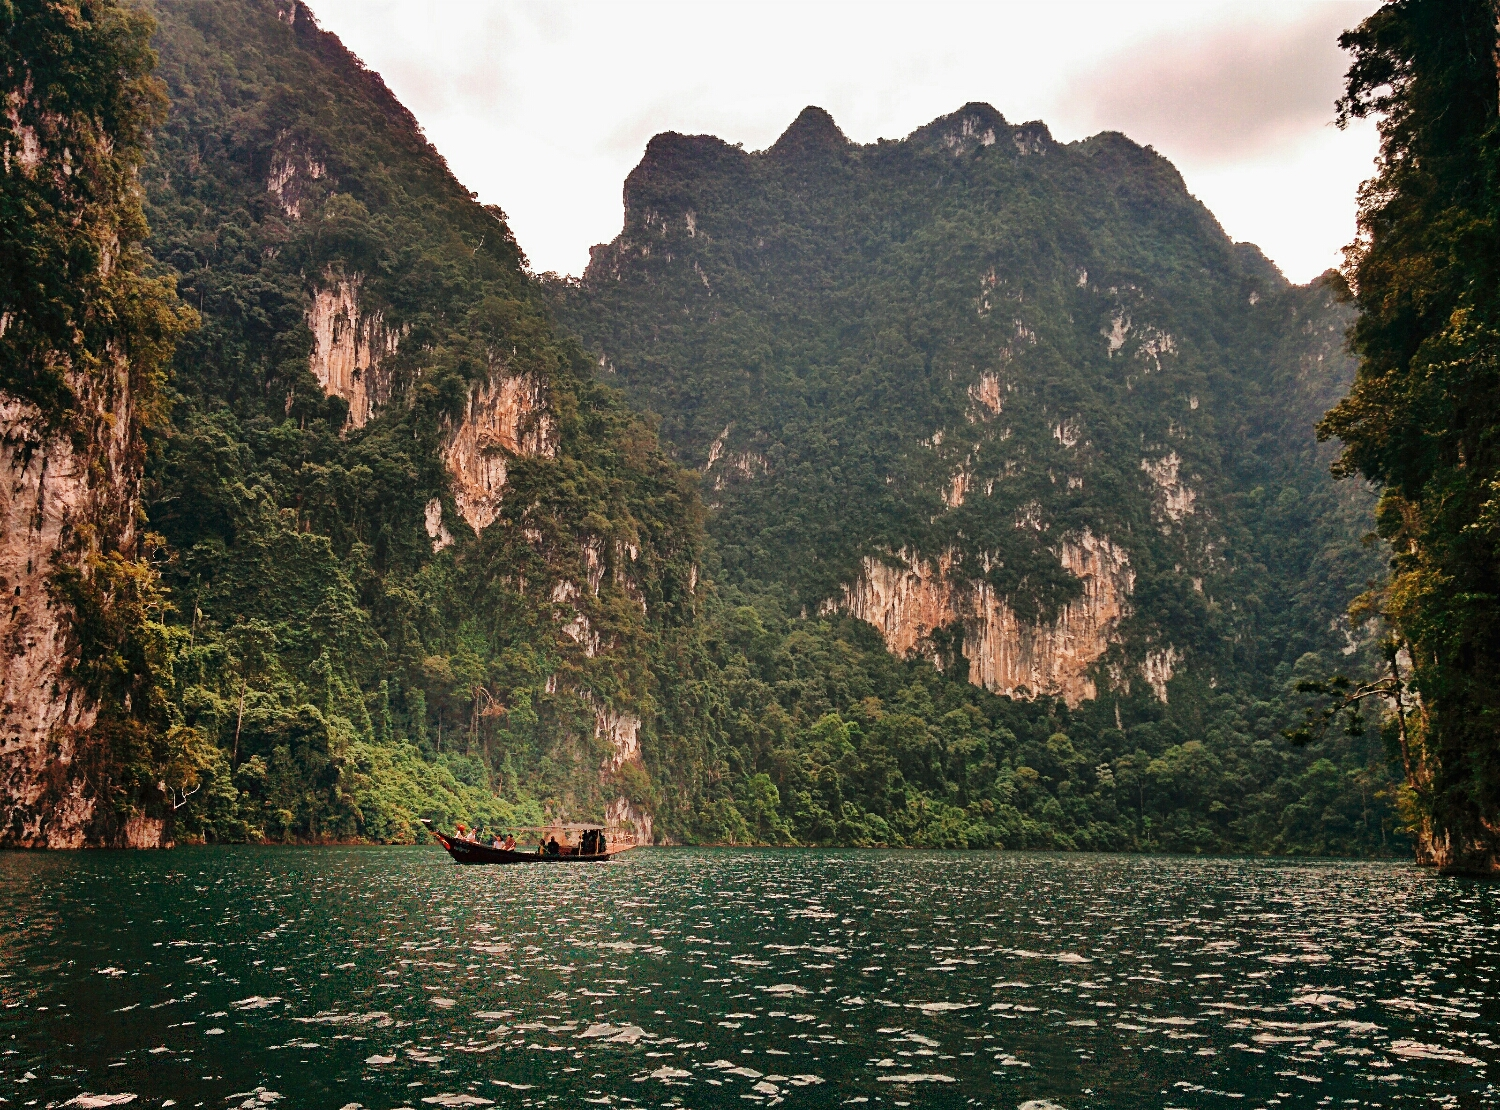 Longtail boat on the man made Cheow Lan Lake, Khao Sok National Park, Thailand.